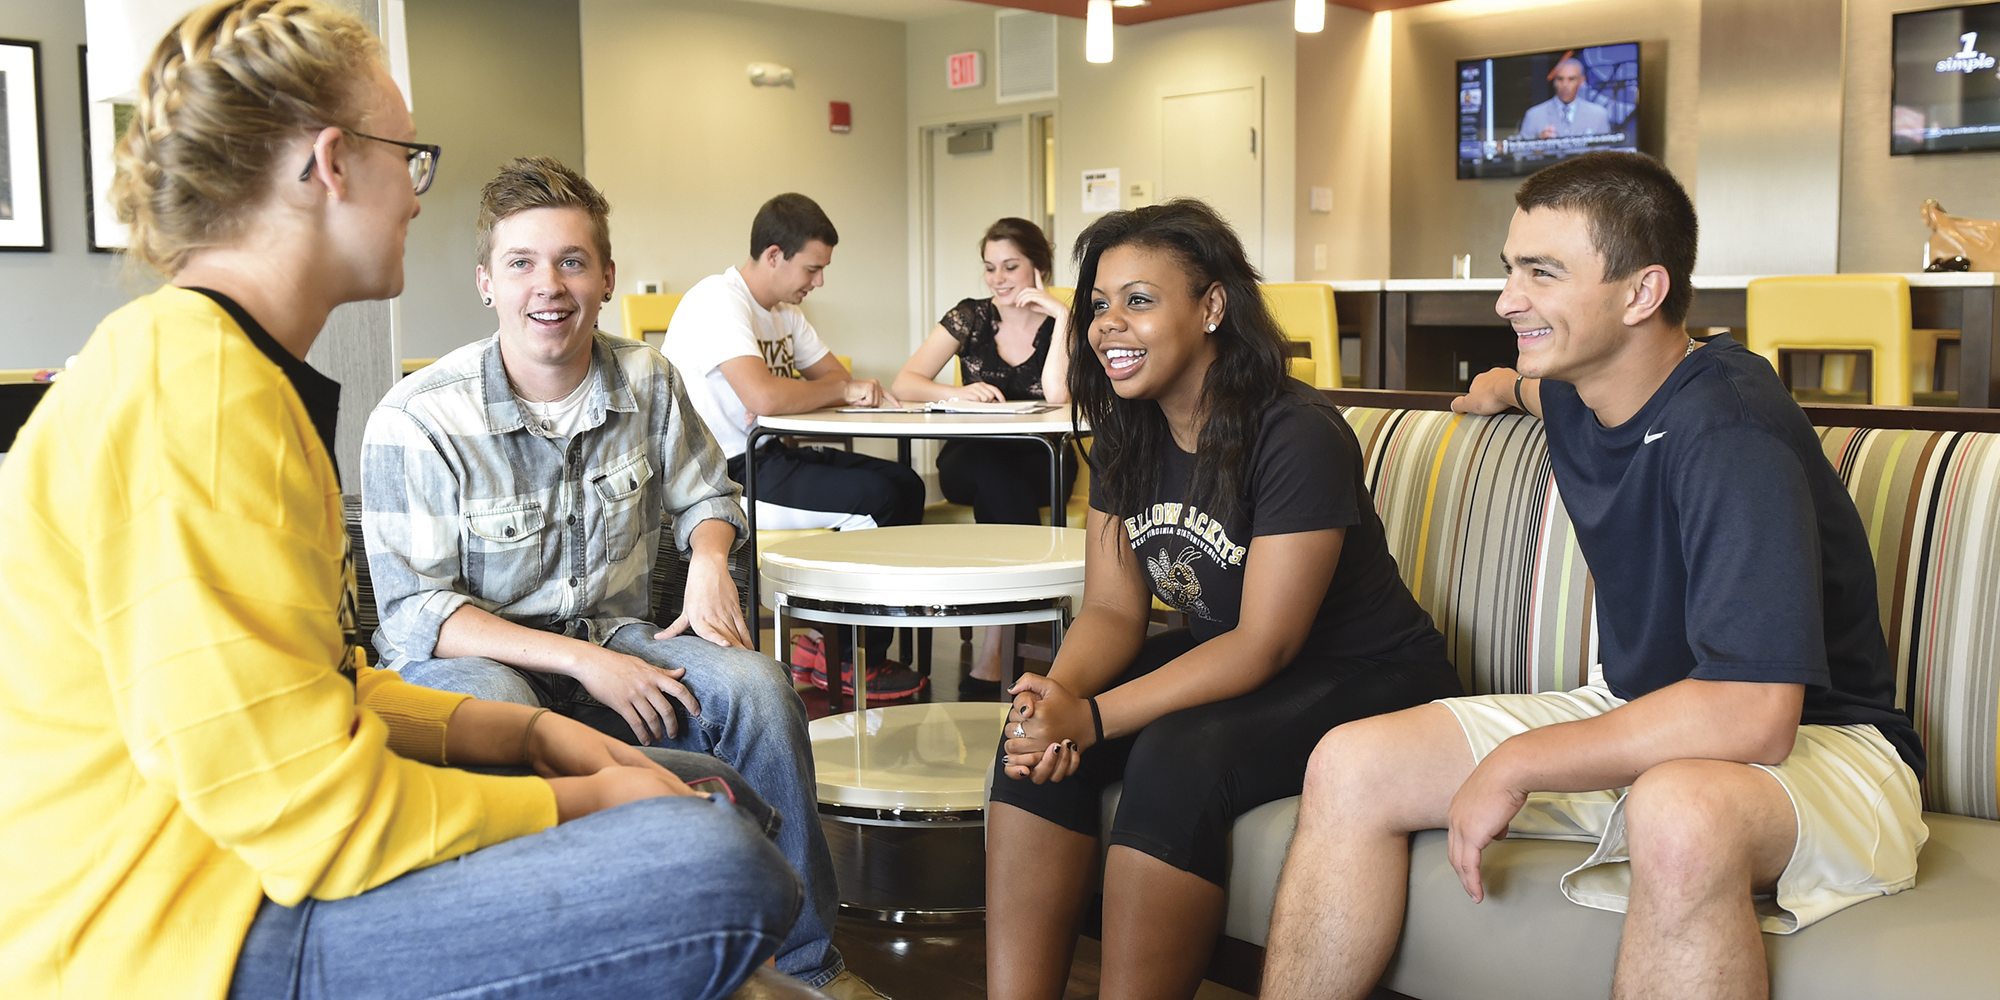 Students laughing, smiling in the cafe.